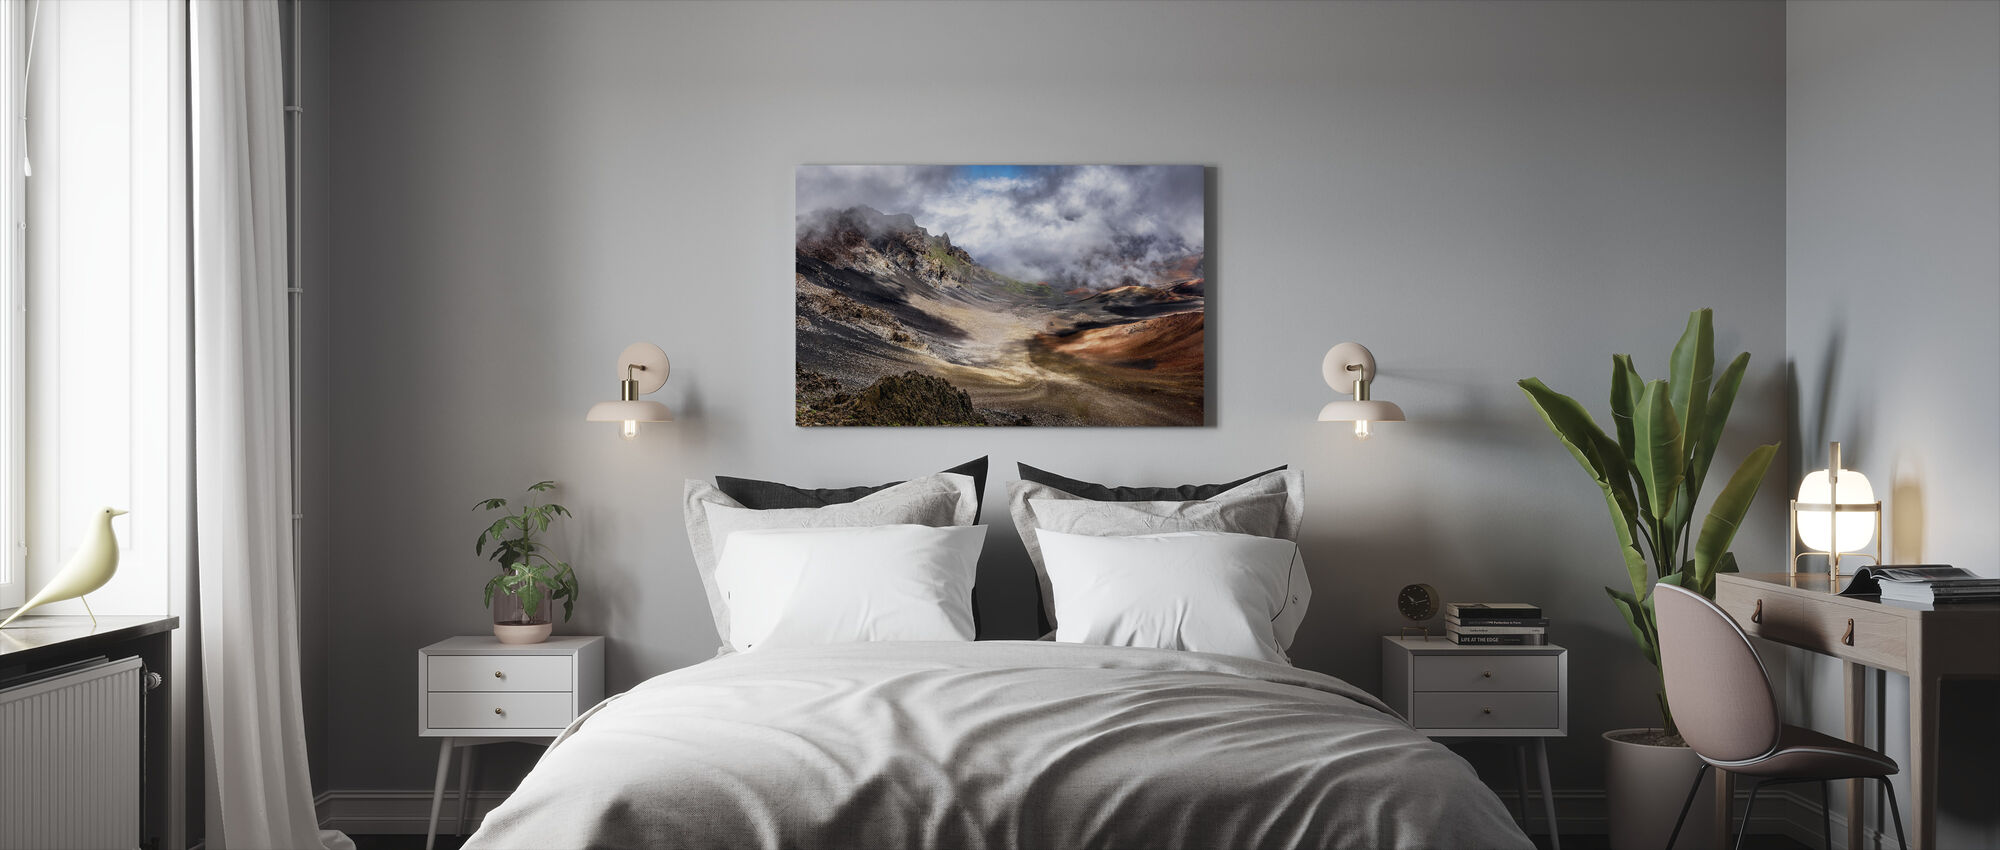 Craters Edge - Canvas print - Bedroom